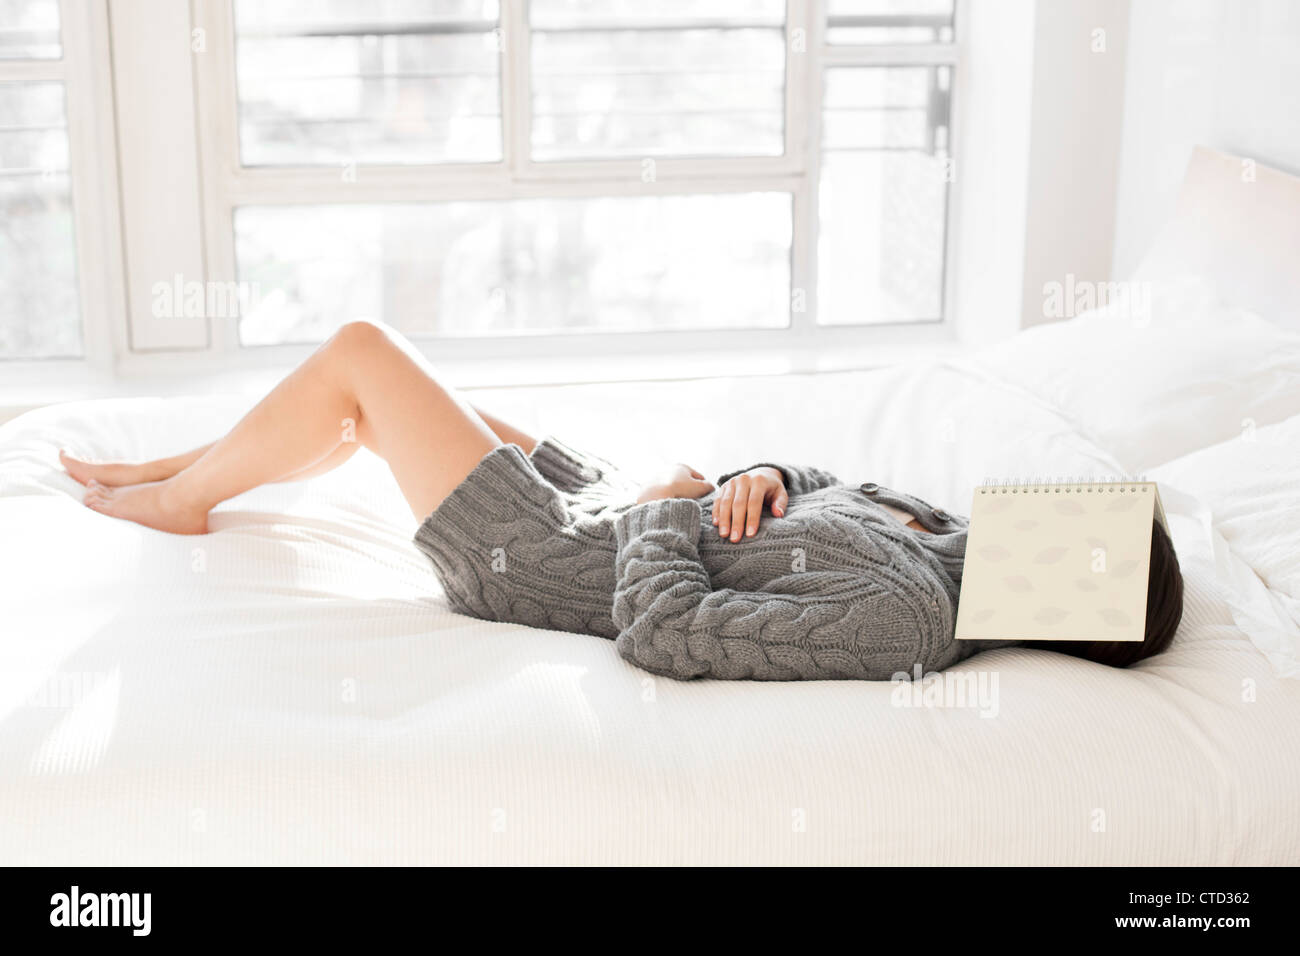 Woman sleeping - Stock Image